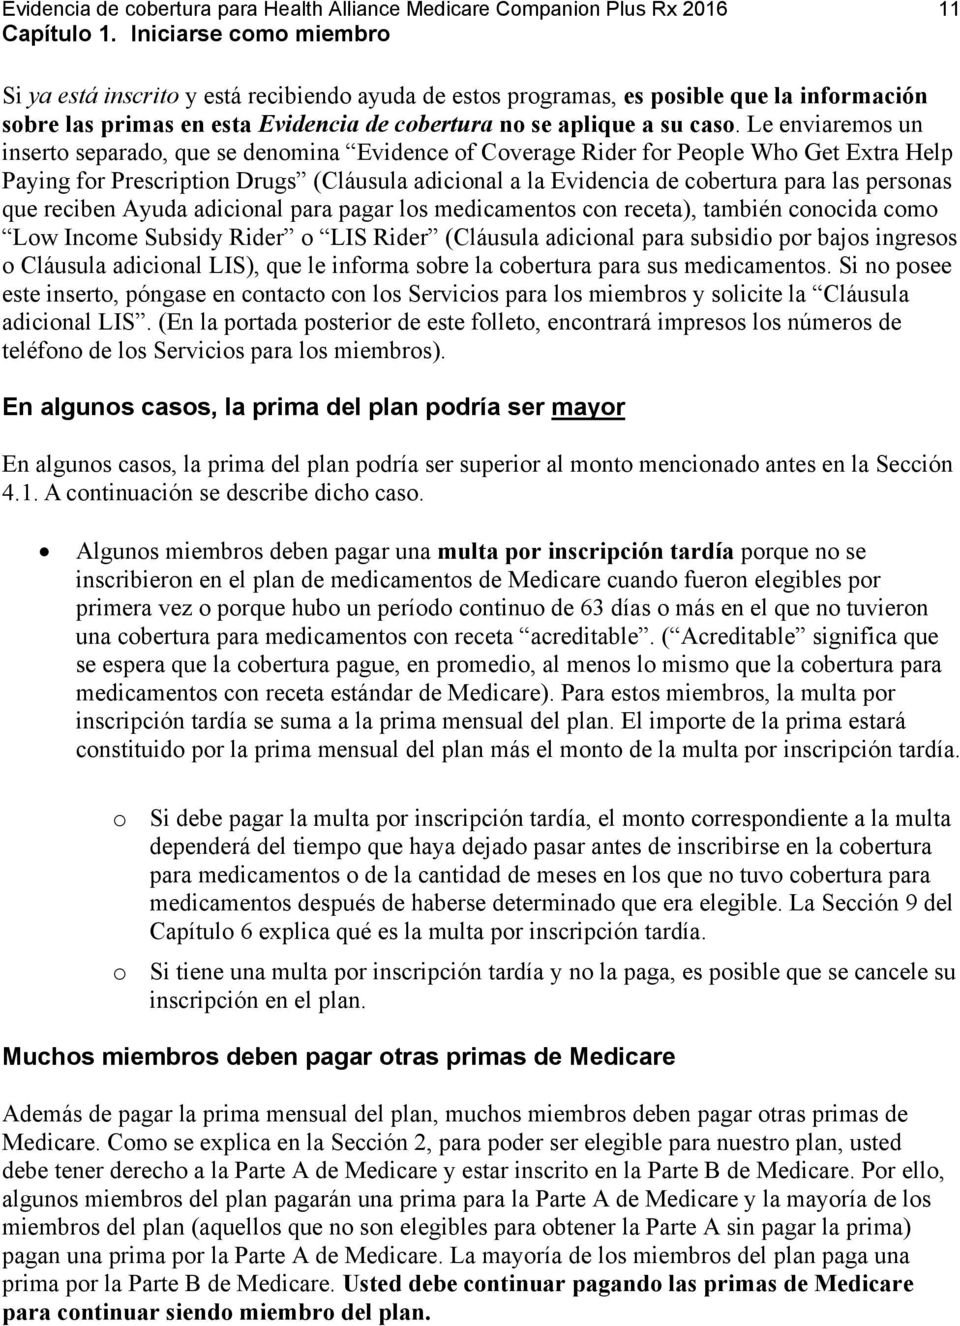 Le enviaremos un inserto separado, que se denomina Evidence of Coverage Rider for People Who Get Extra Help Paying for Prescription Drugs (Cláusula adicional a la Evidencia de cobertura para las